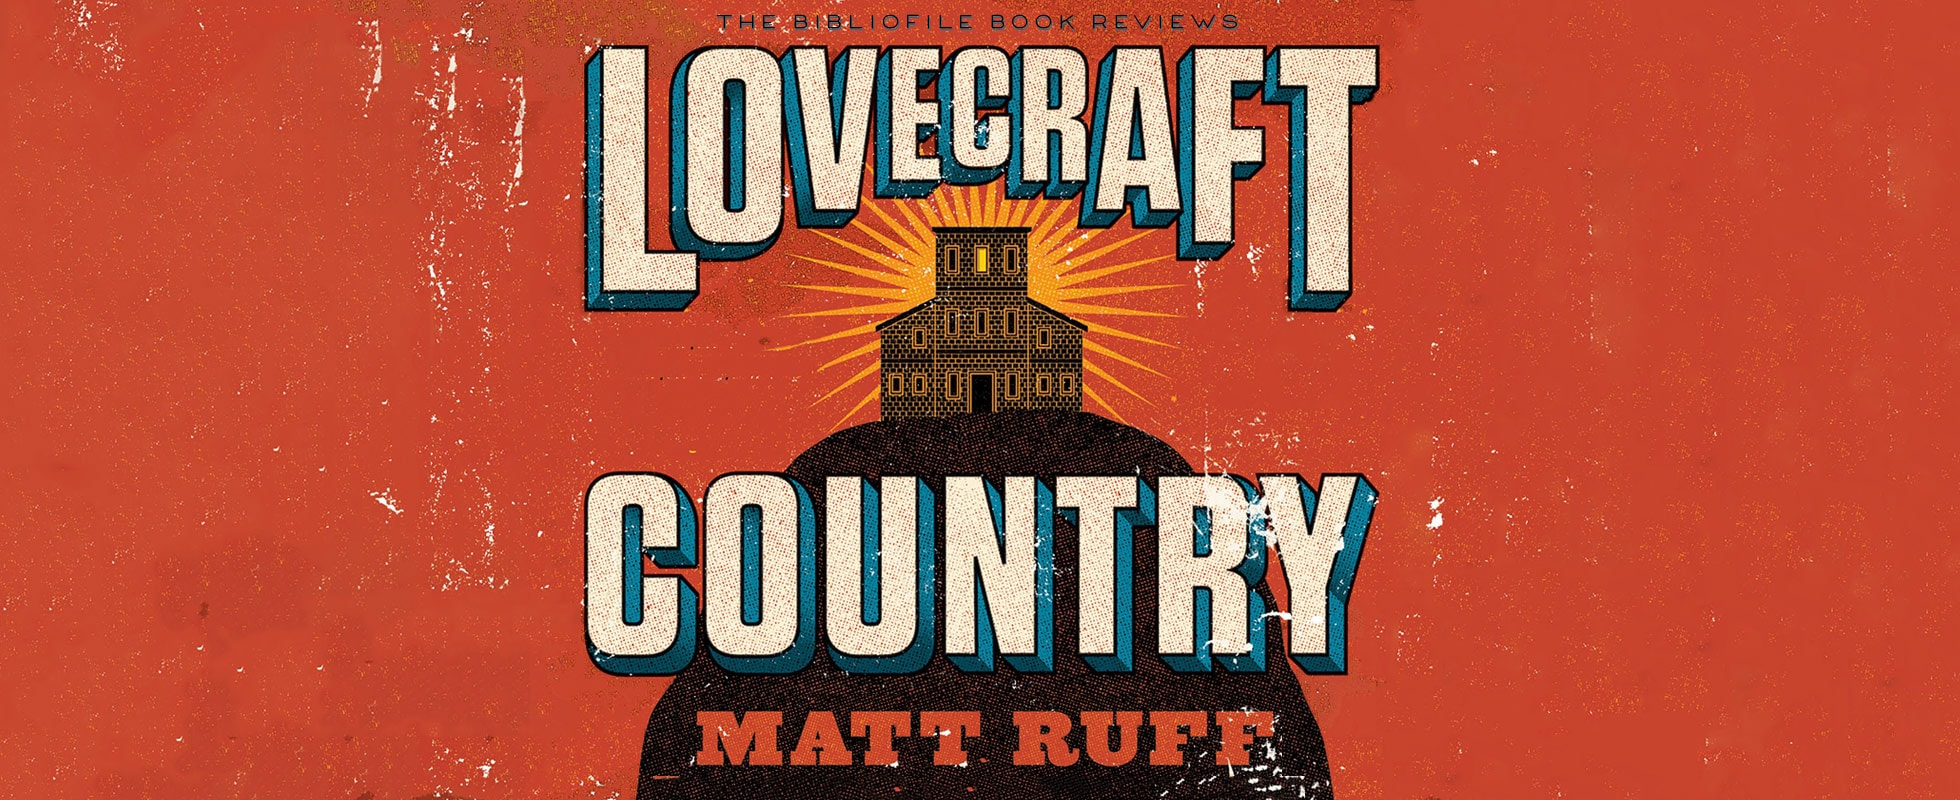 lovecraft country matt ruff book review plot summary synopsis spoilers ending explained